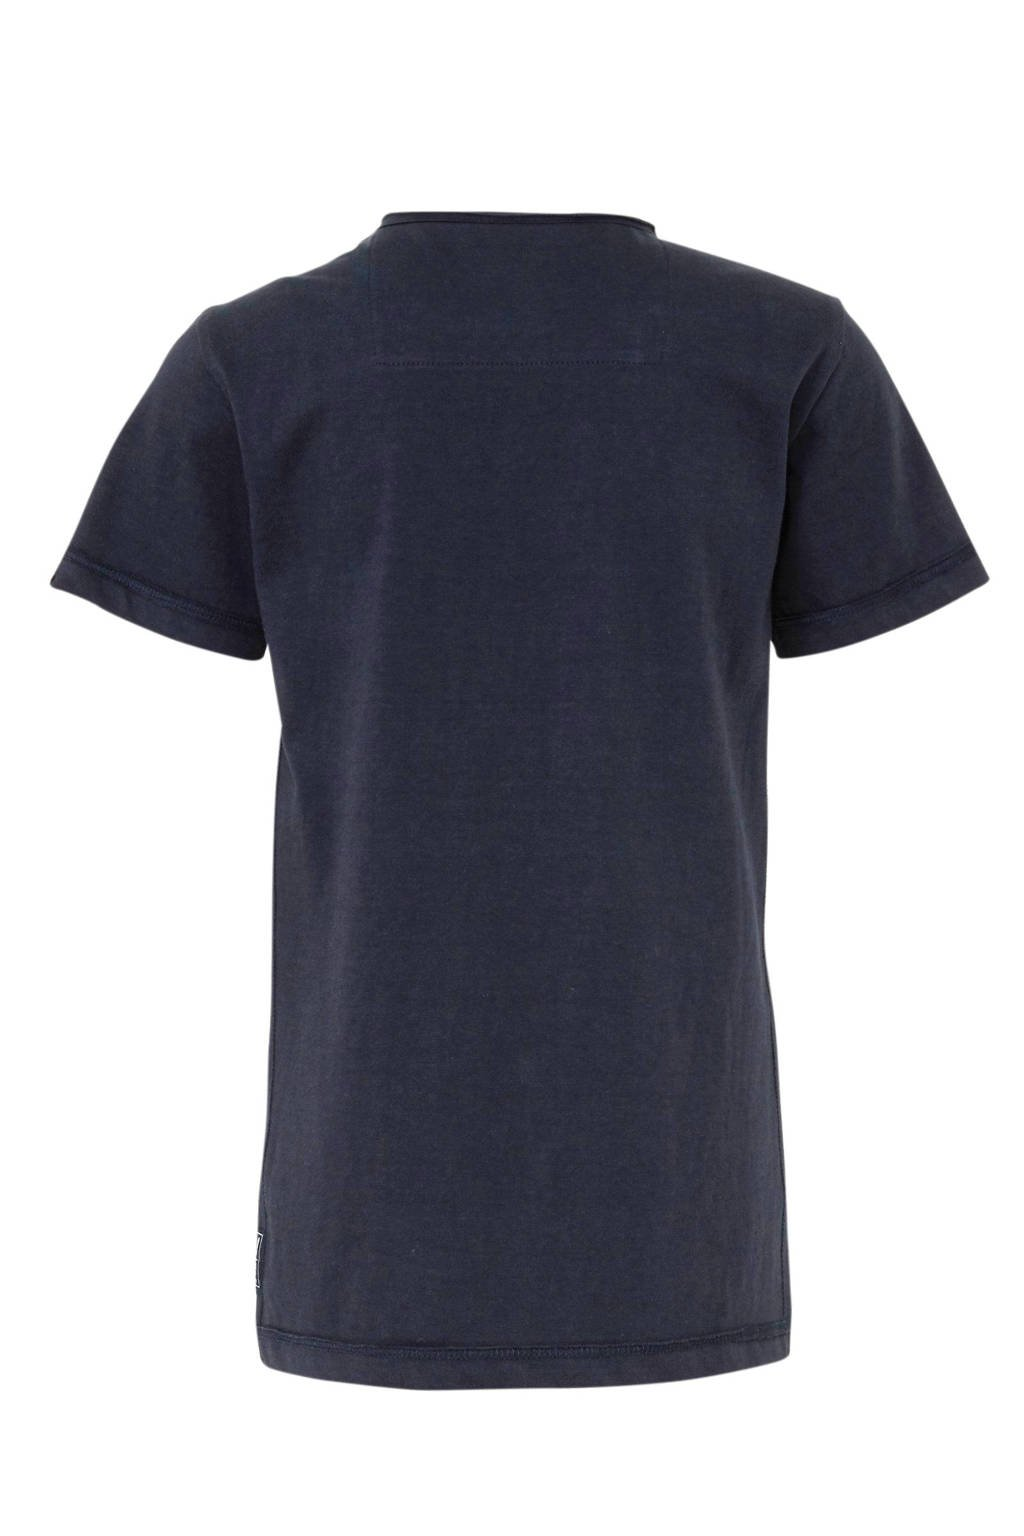 Indian Blue Jeans T-shirt met tekst donkerblauw/wit, Donkerblauw/wit